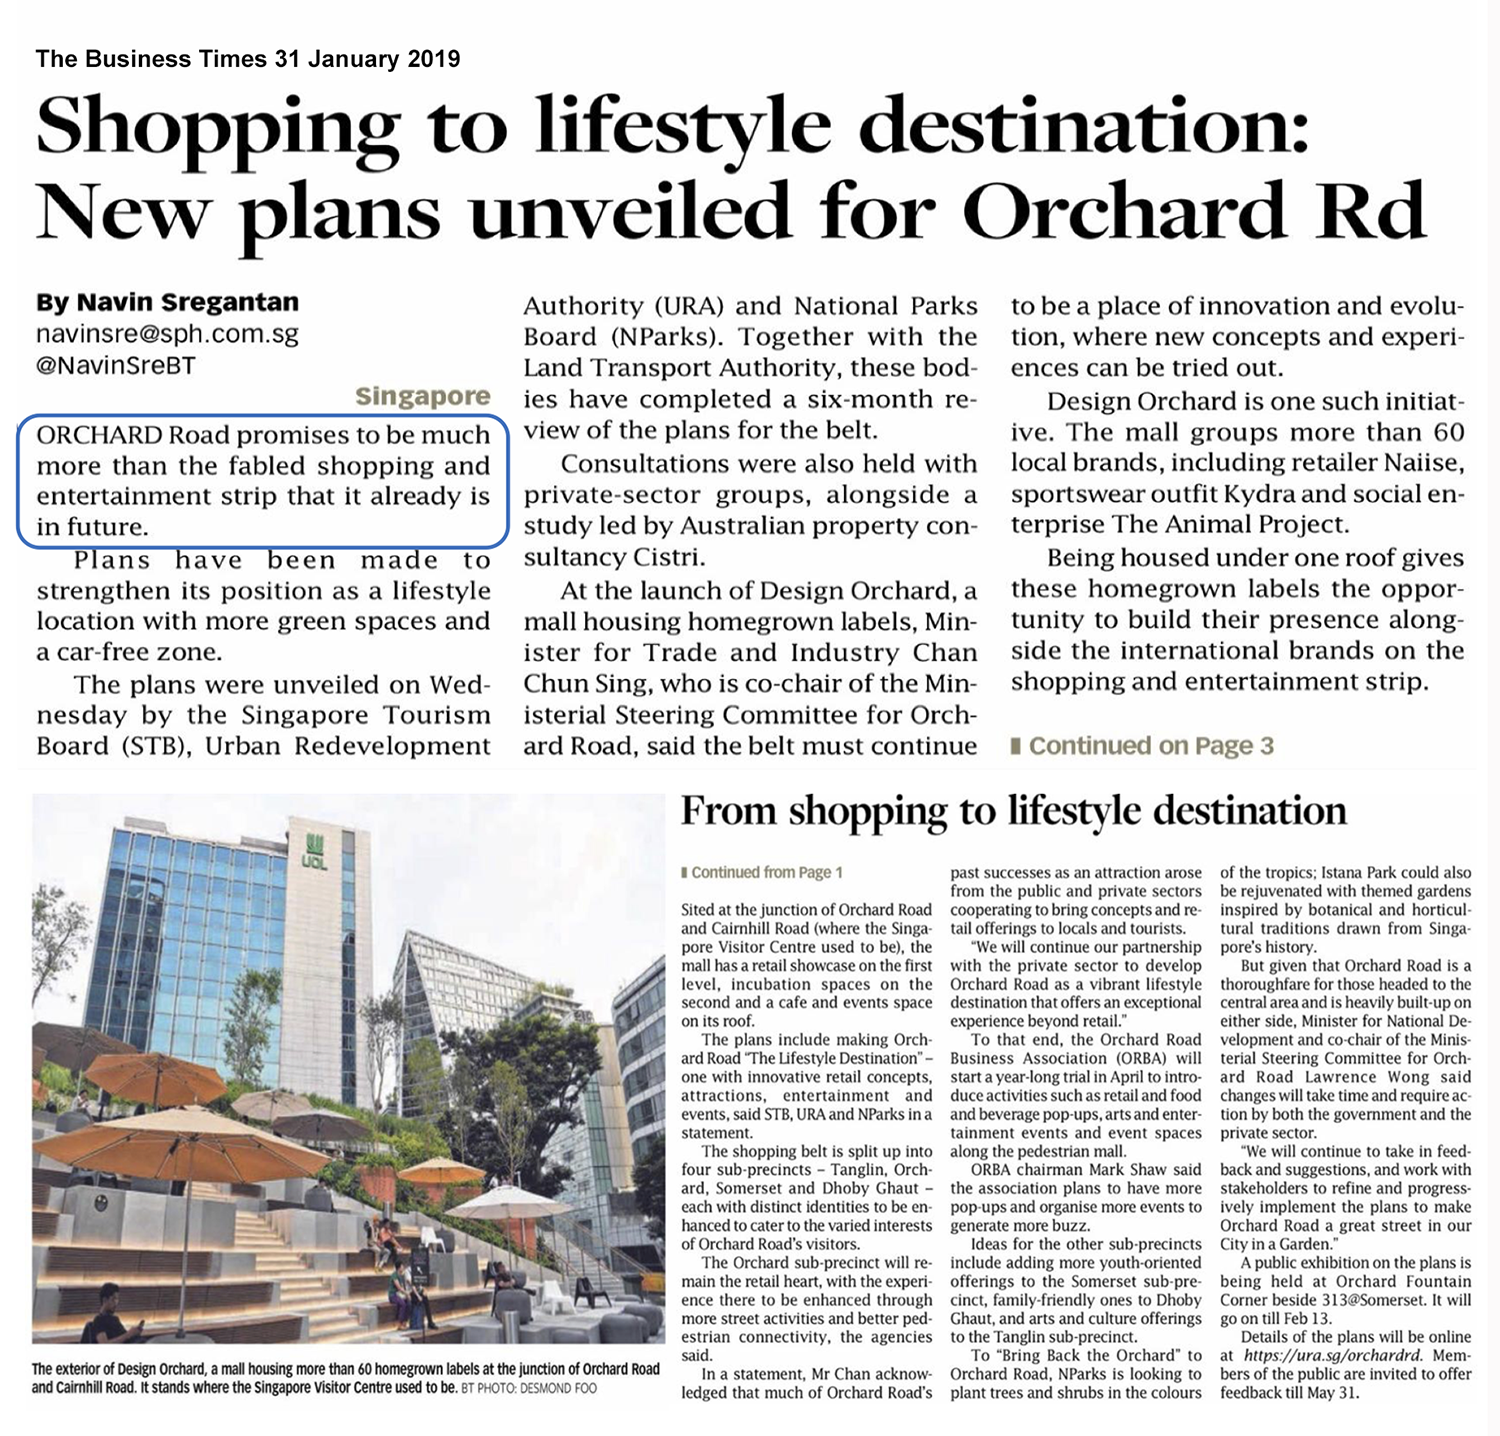 Boulevard 88 Shopping To Lifestyle Destination New plans unveiled for Orchard Road